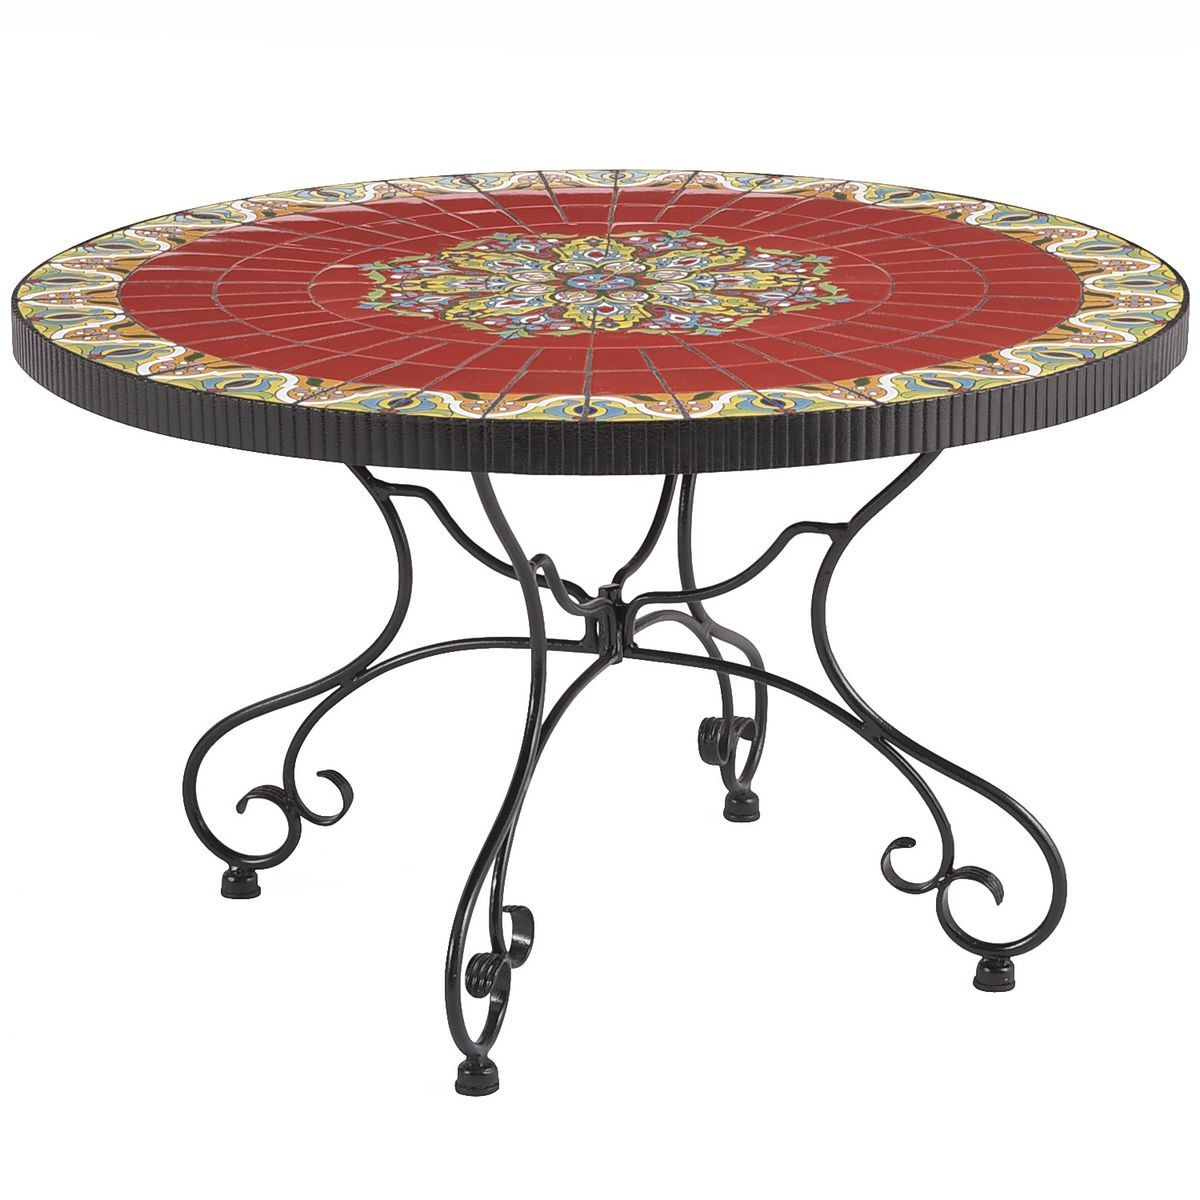 Rania Coffee Table Red Mosaic Pier 1 Imports Outdoor Coffee